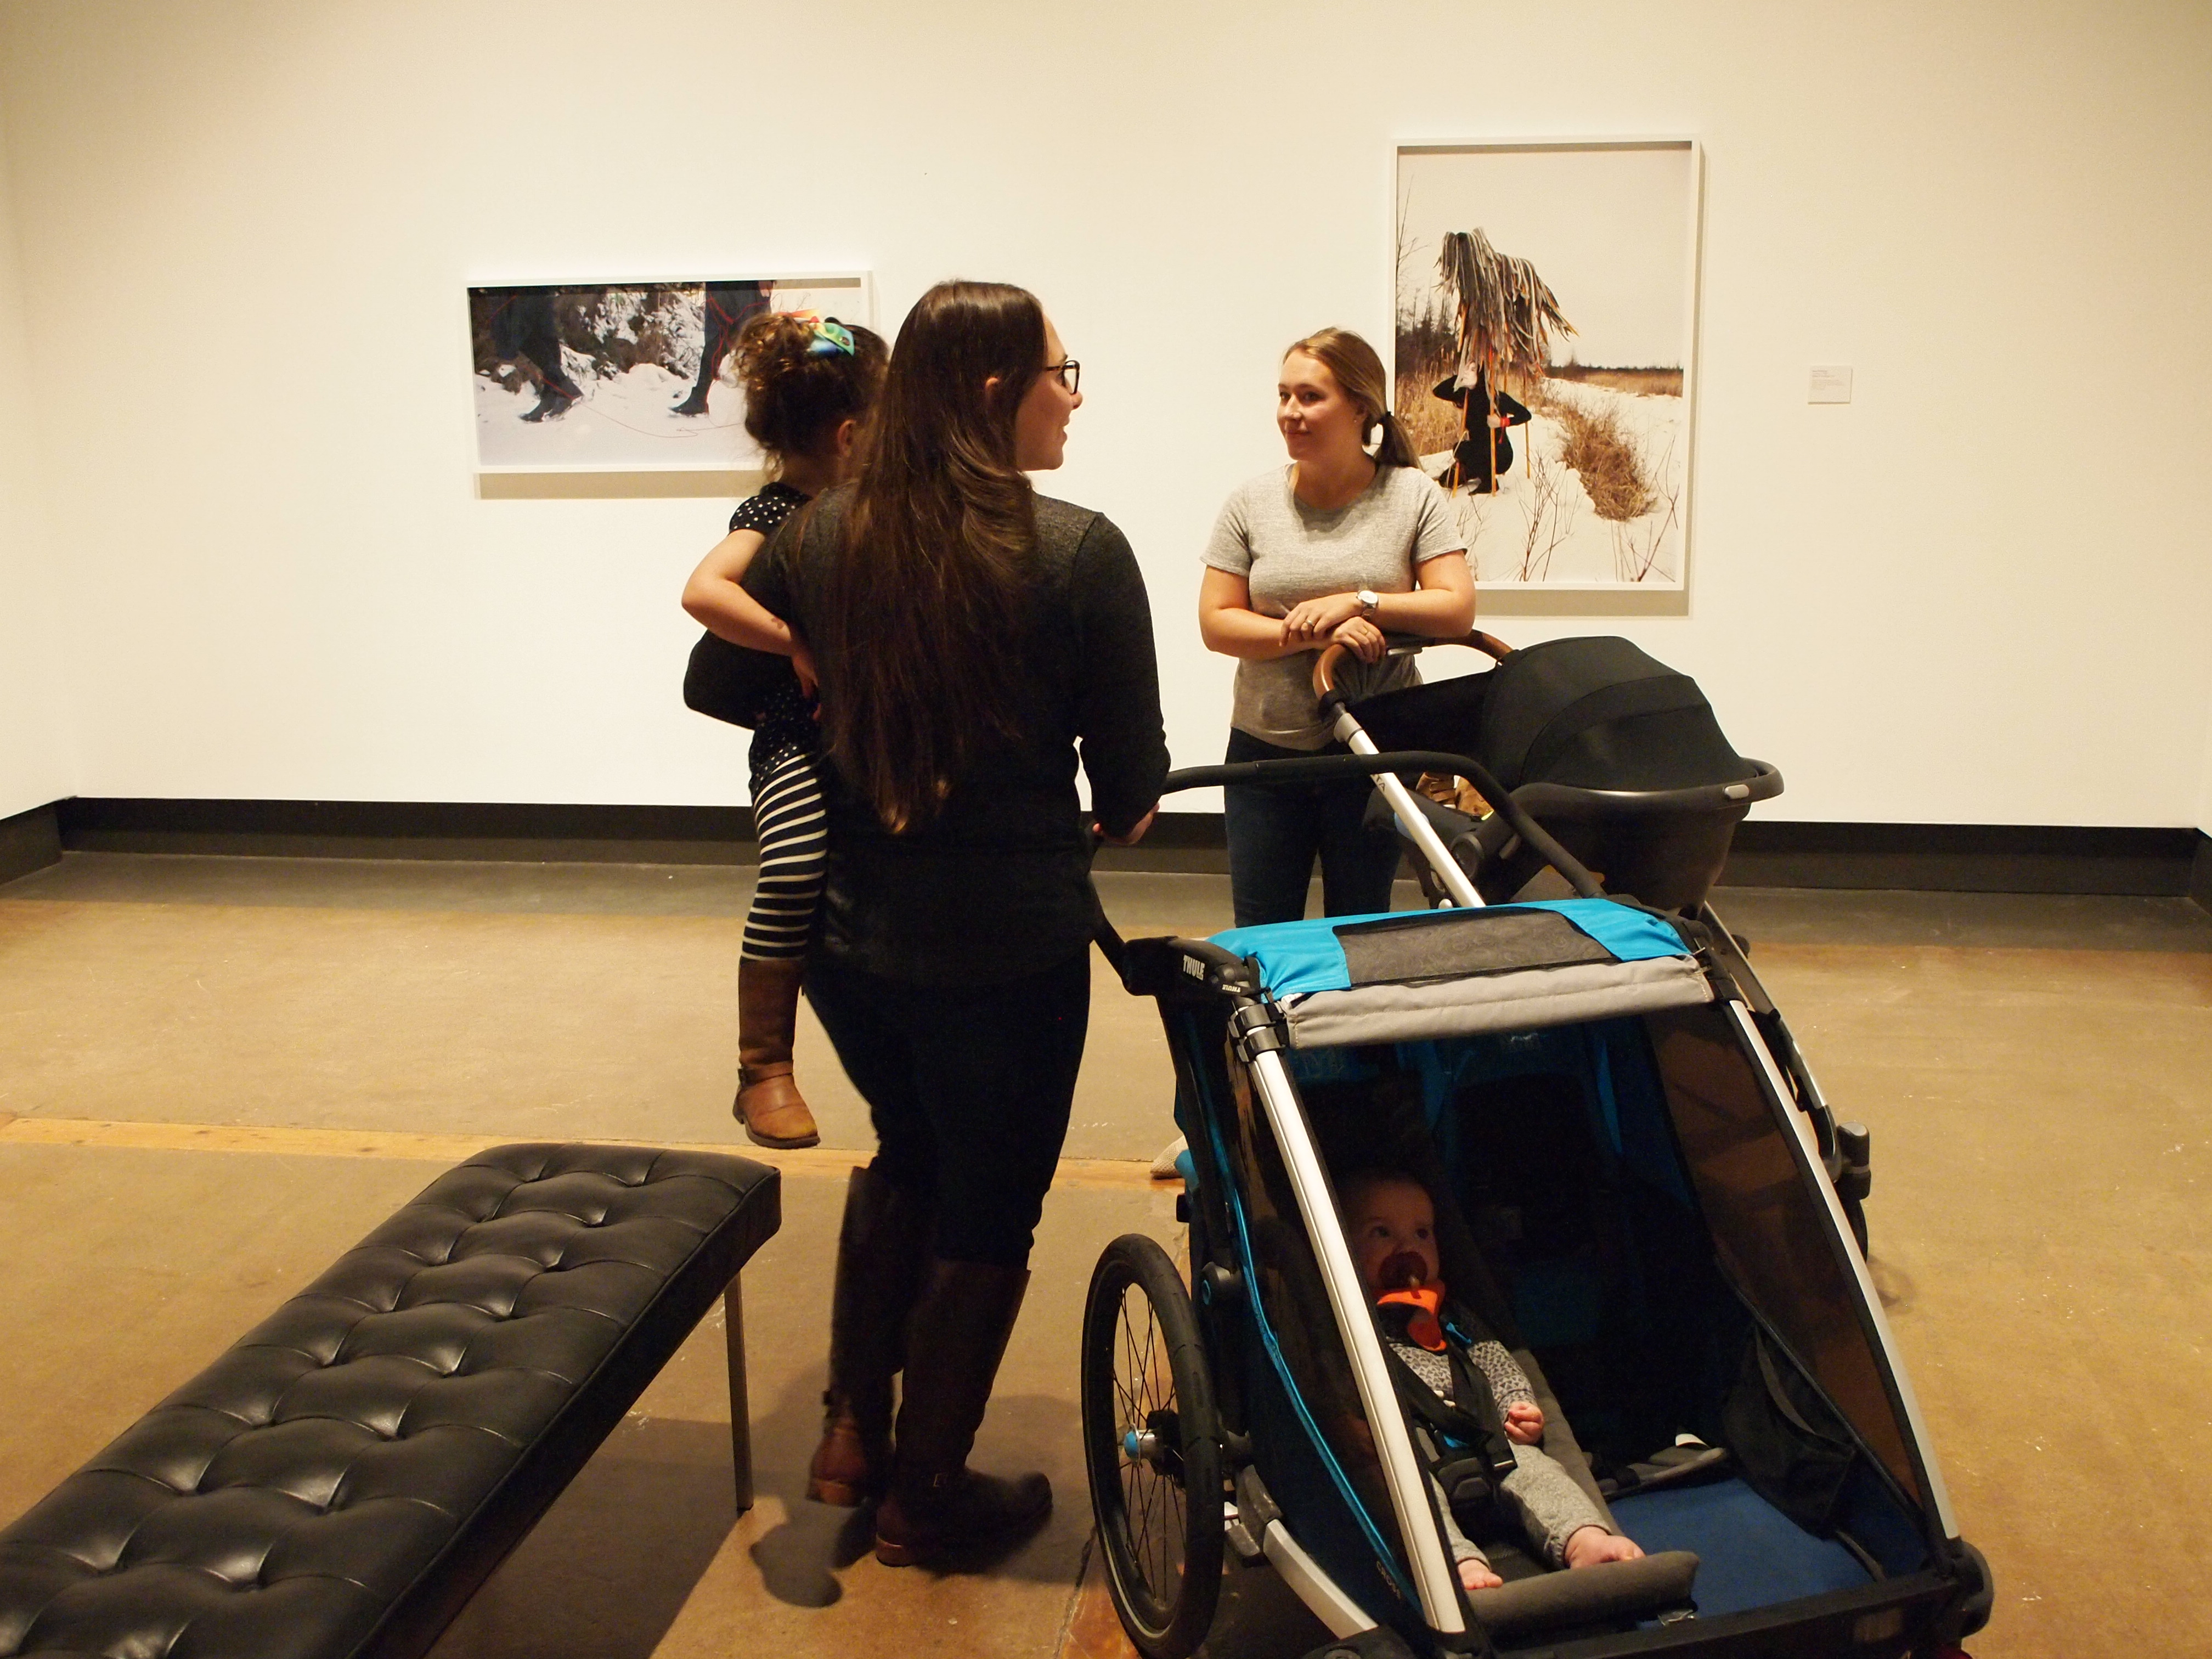 Two mothers with strollers carrying young babies smiling and chatting together in the gallery